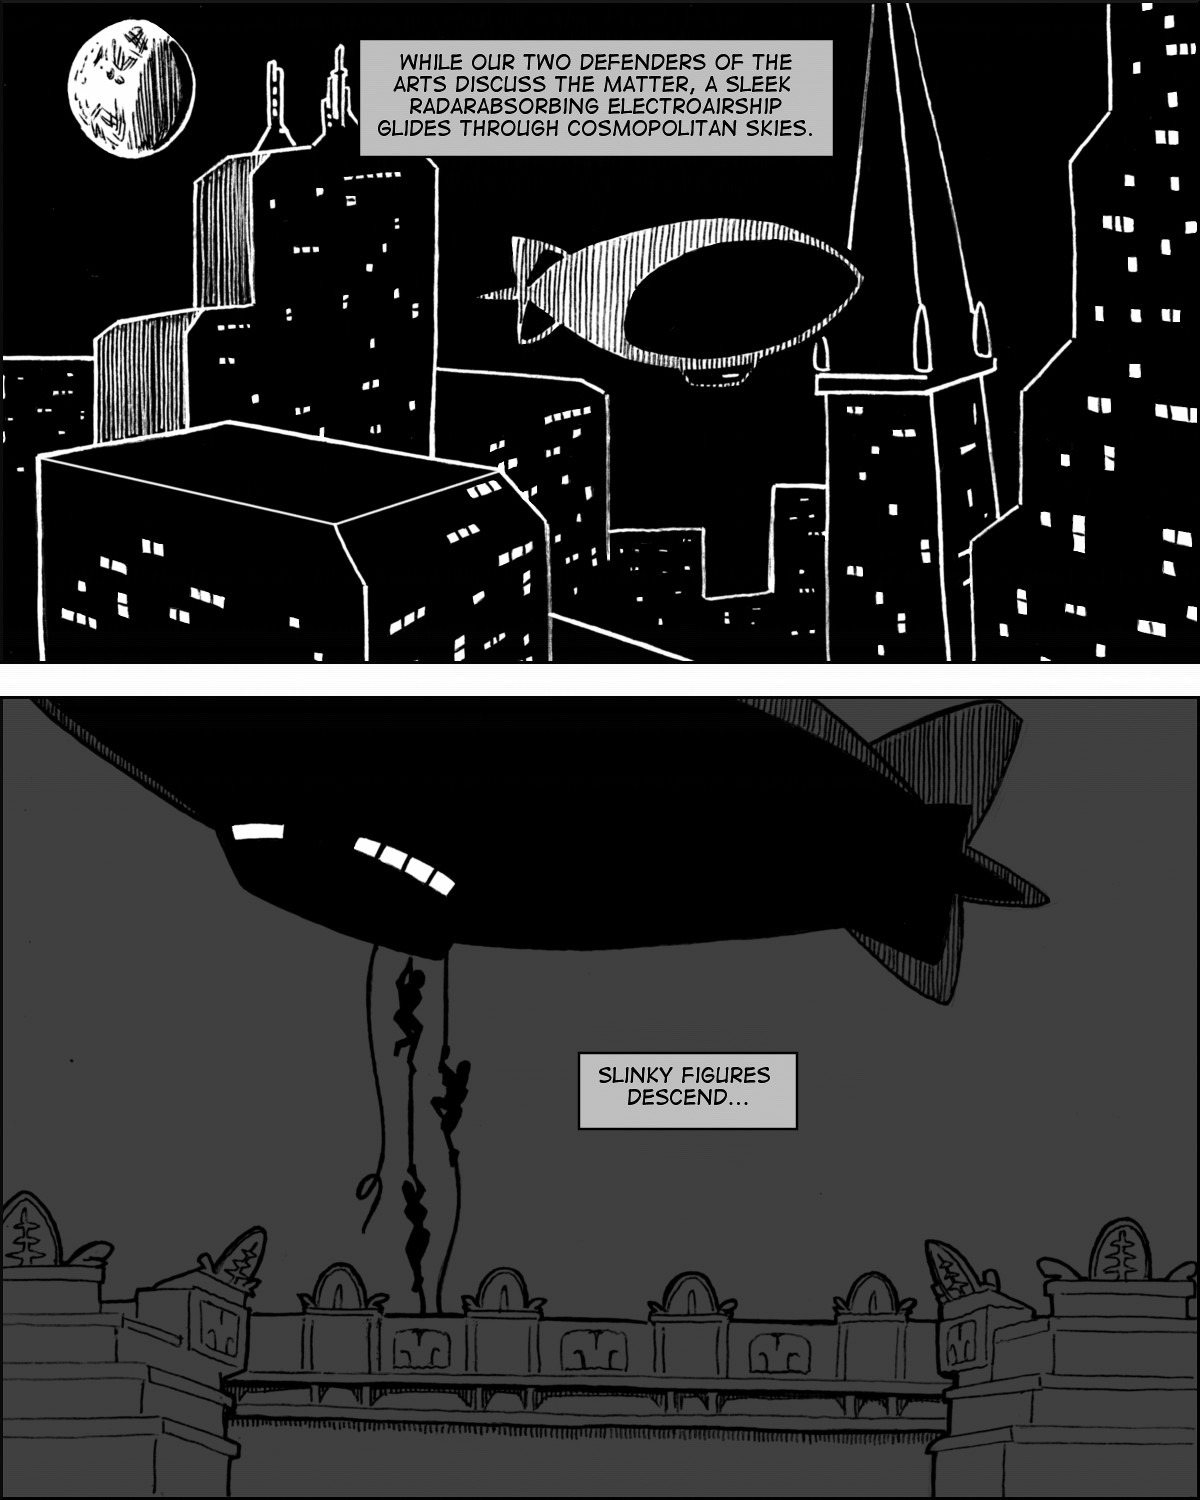 Through night skies, an airship slips.